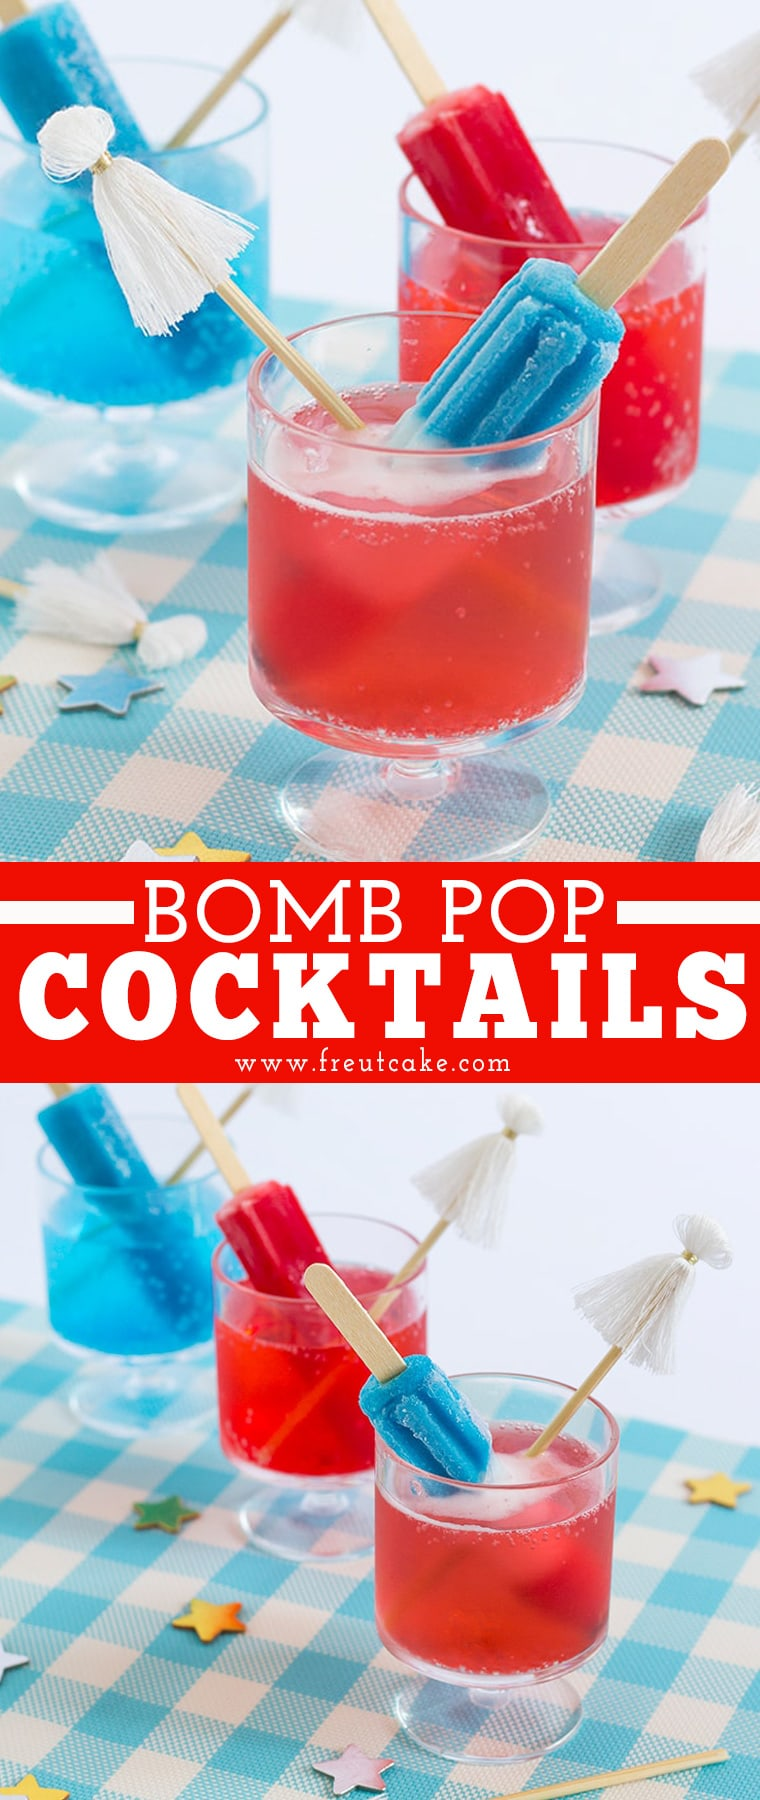 BOMB Pop cocktails